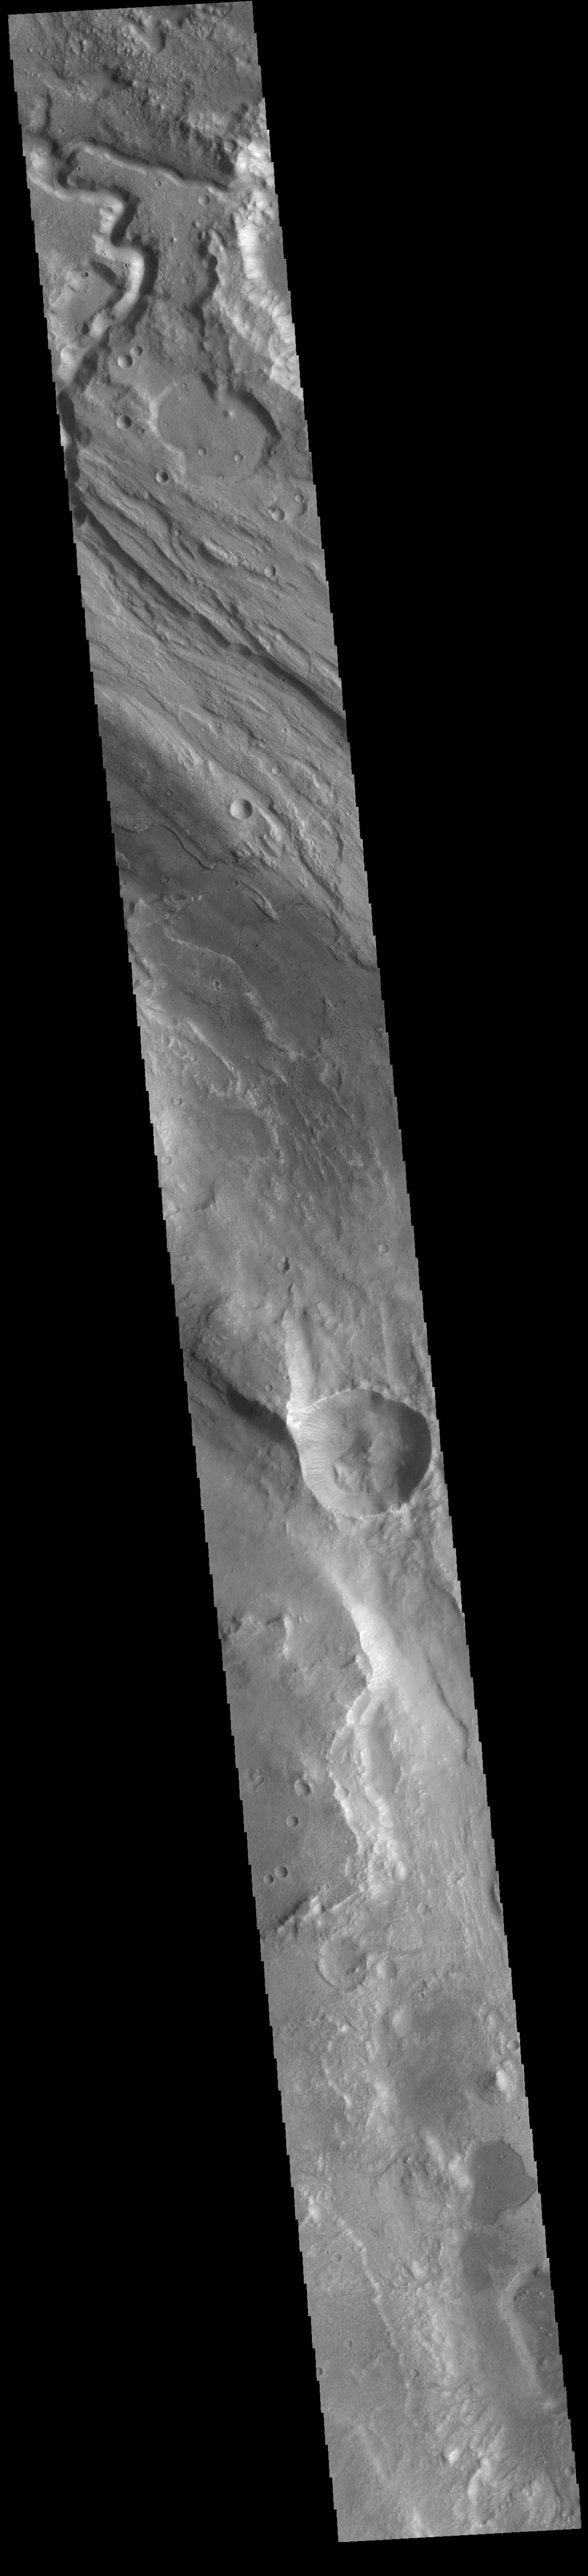 This image from NASA's Mars Odyssey shows part of Ares Vallis, one of the large channels in Margaritfer Terra that empty into Chryse Planitia.